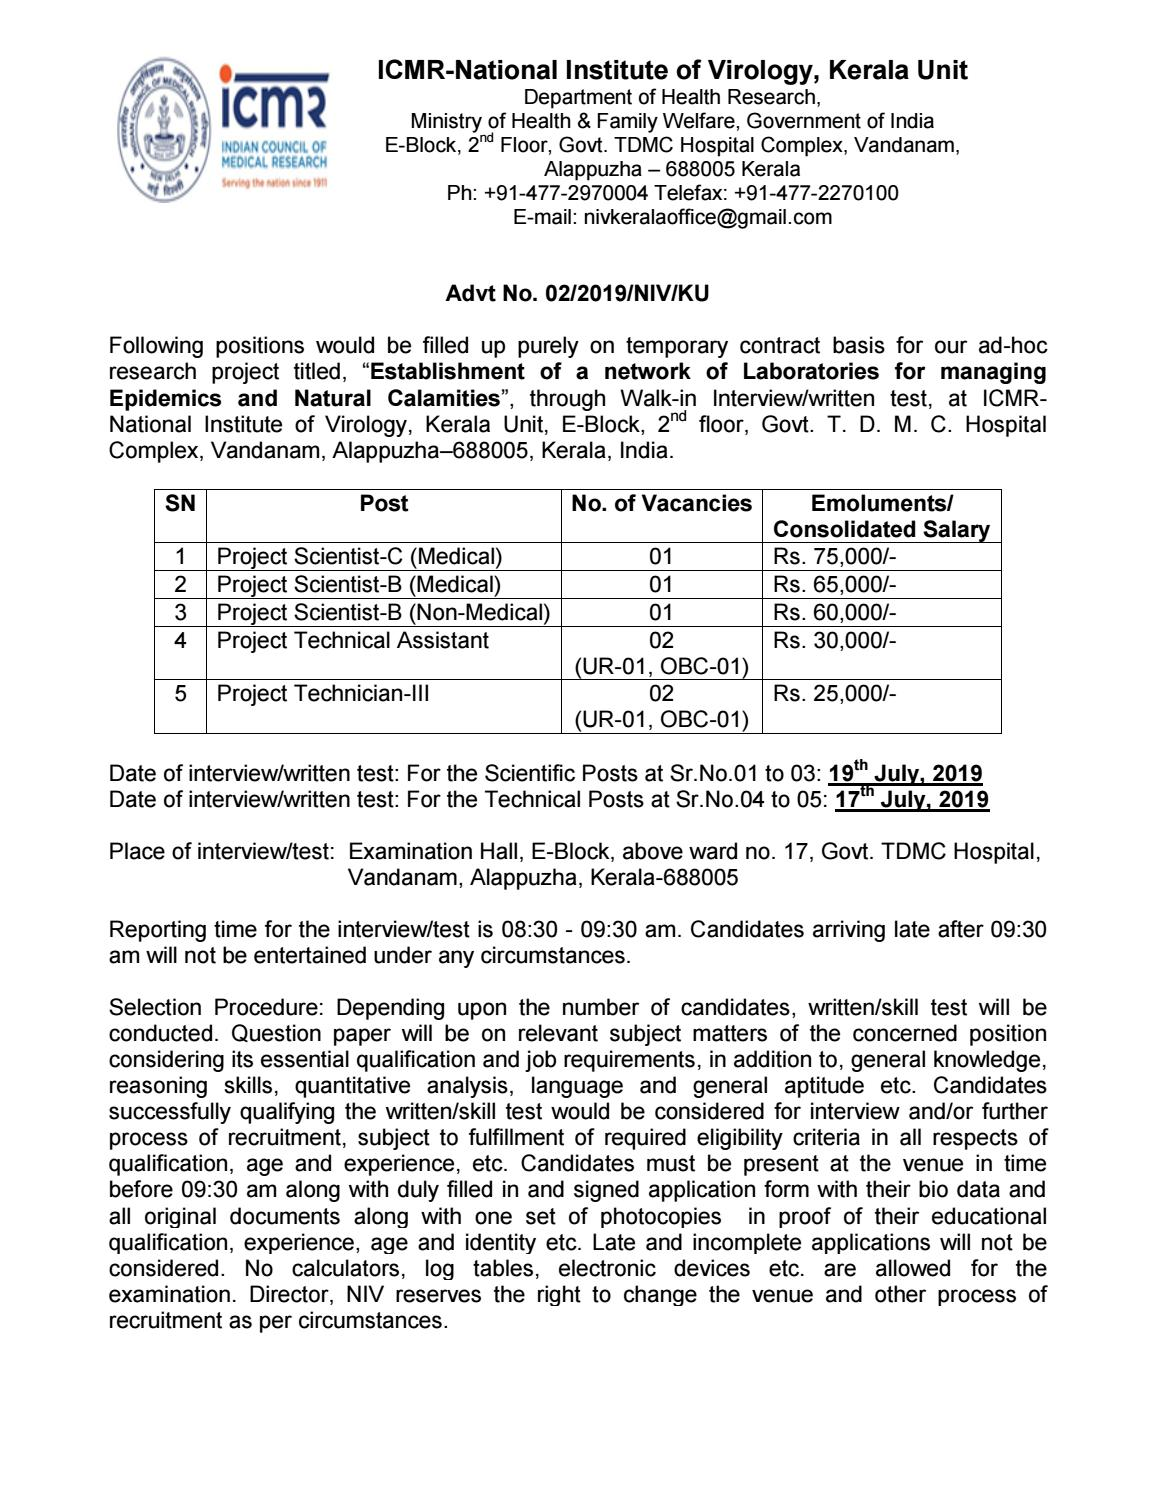 ICMR-NIV Scientist Recruitment 2019 For Biotech / Microbiology by